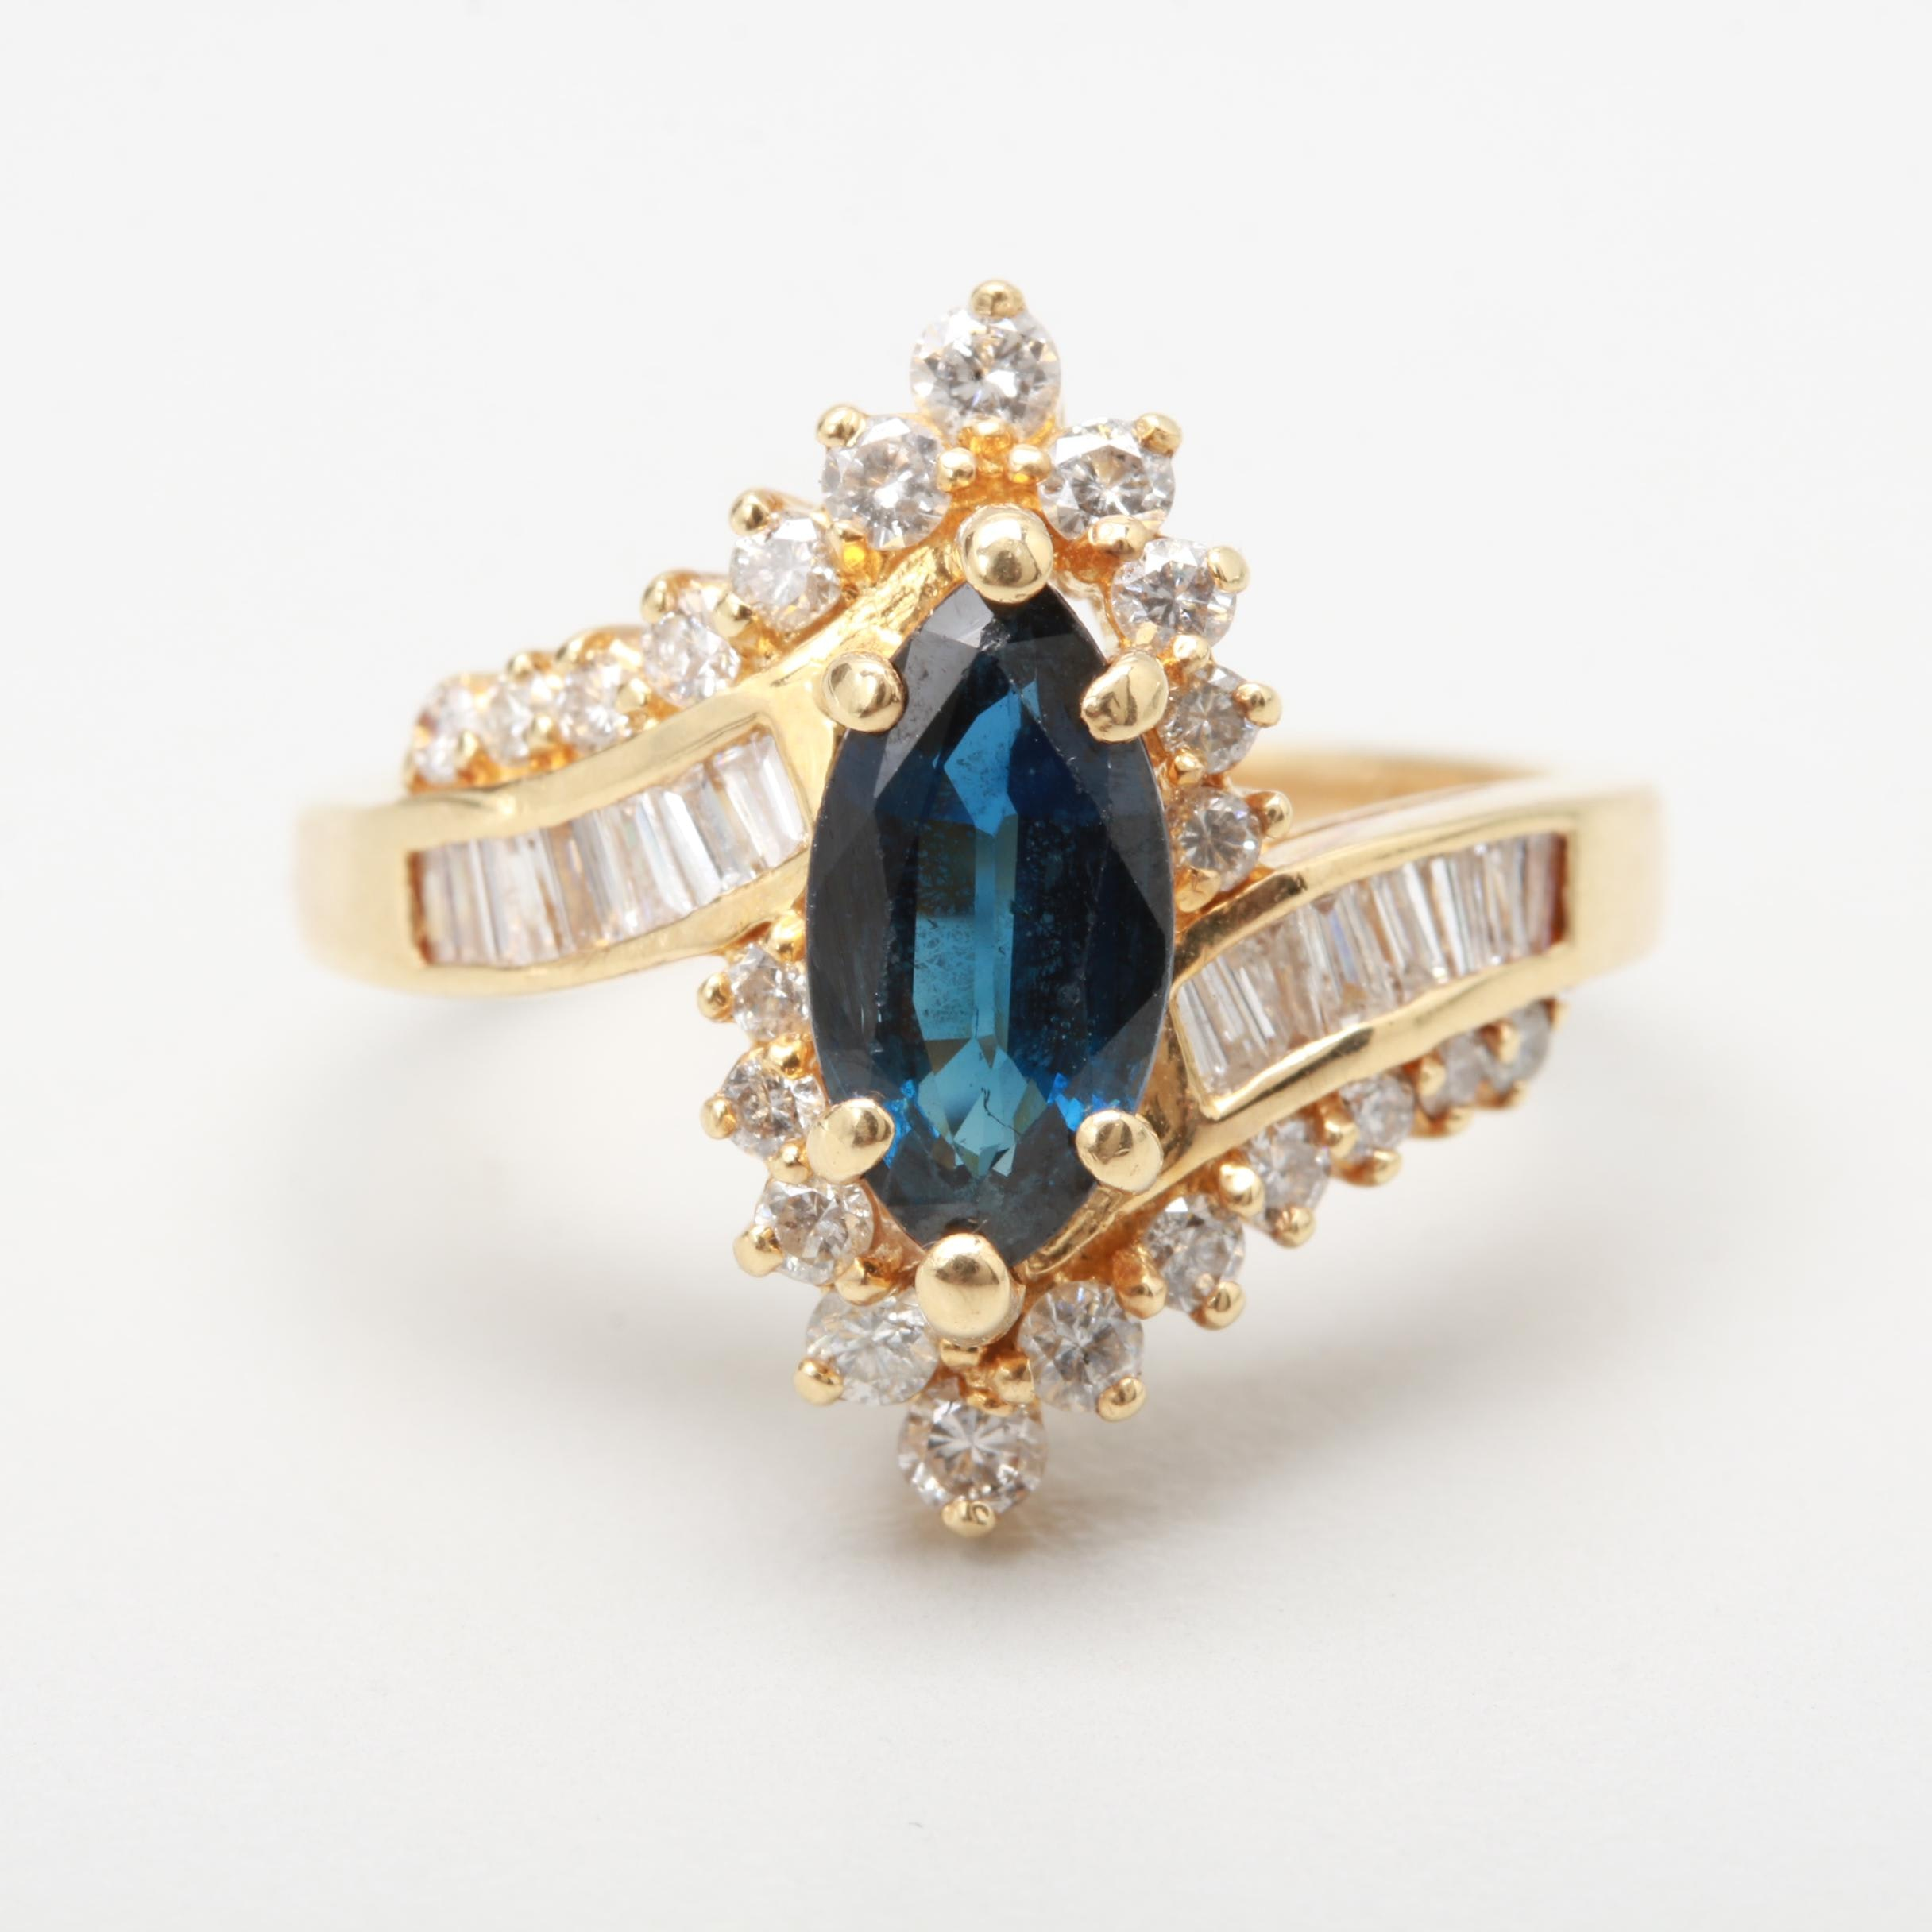 14K Yellow Gold 1.15 CT Sapphire and Diamond Ring